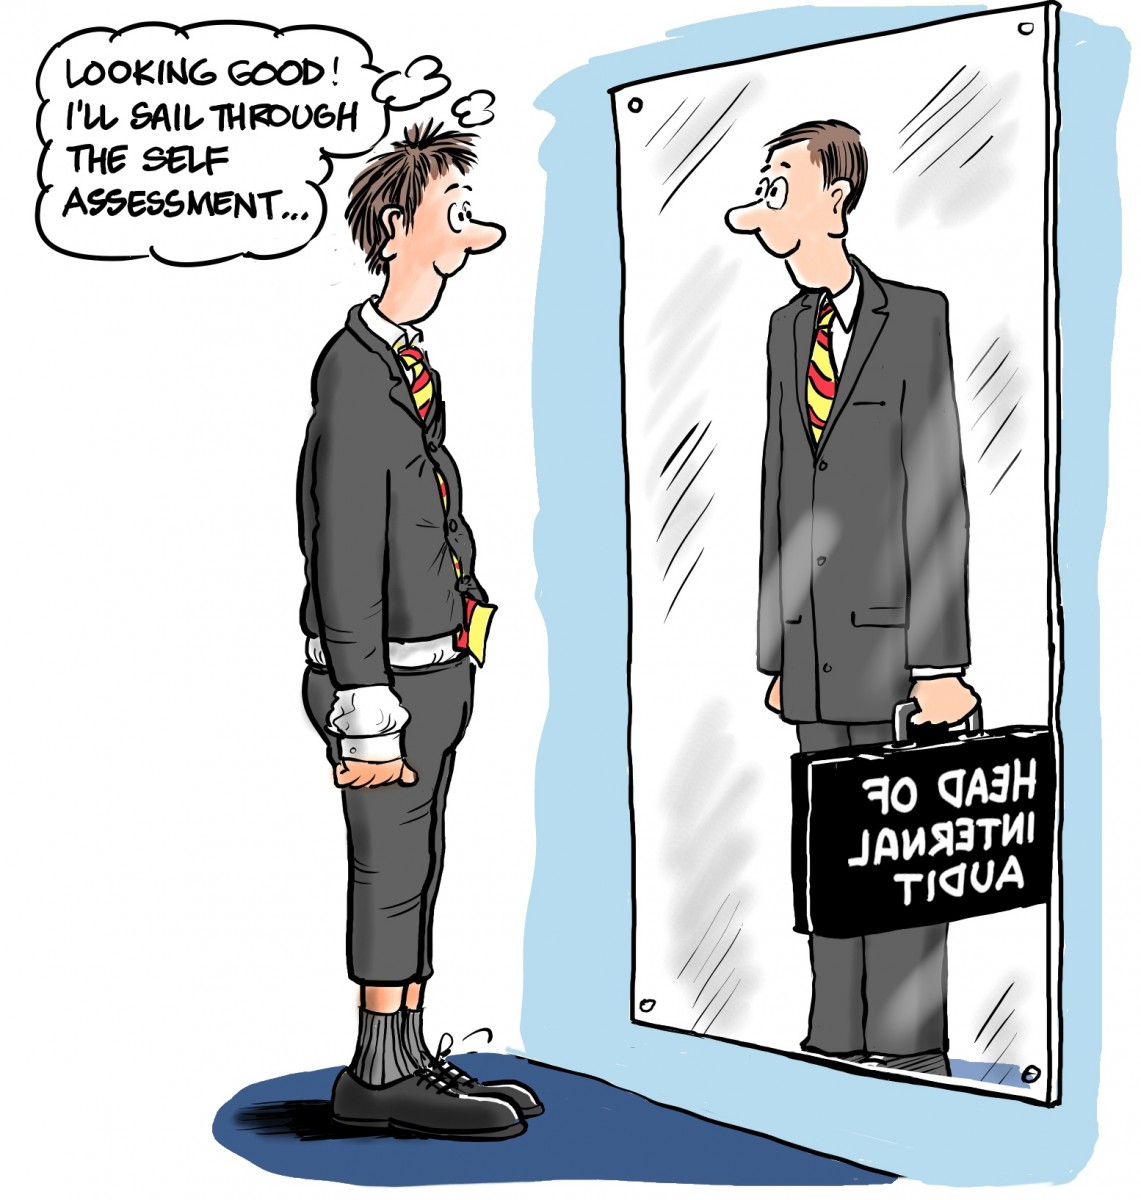 Looking-good-Ill-sail-through-the-self-assessment